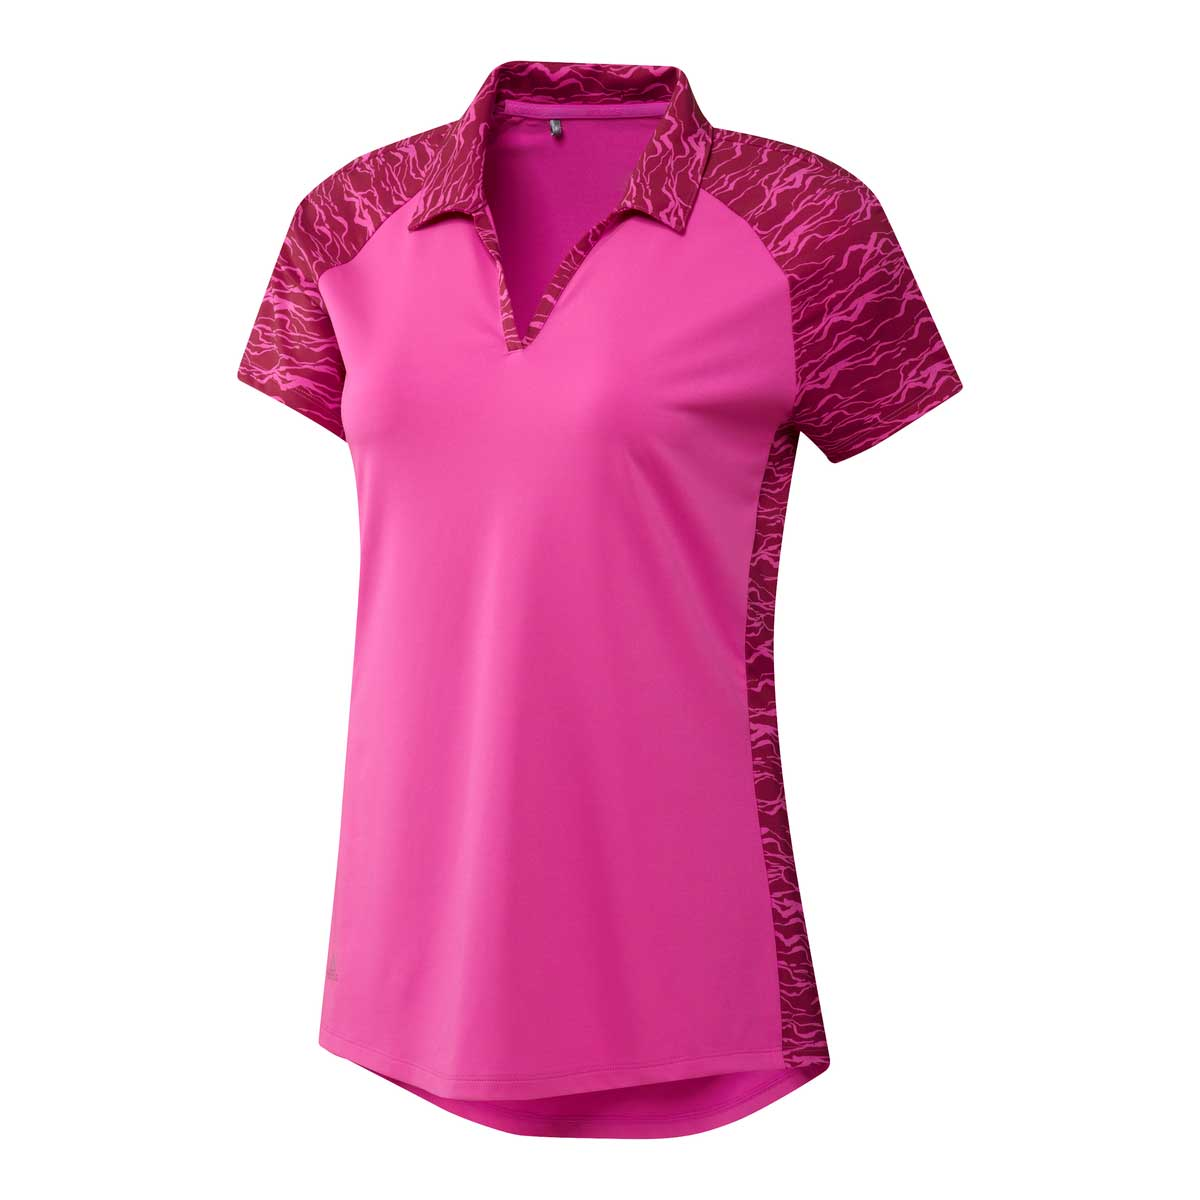 Adidas Women's Ultimate 365 Printed Screaming Pink Polo